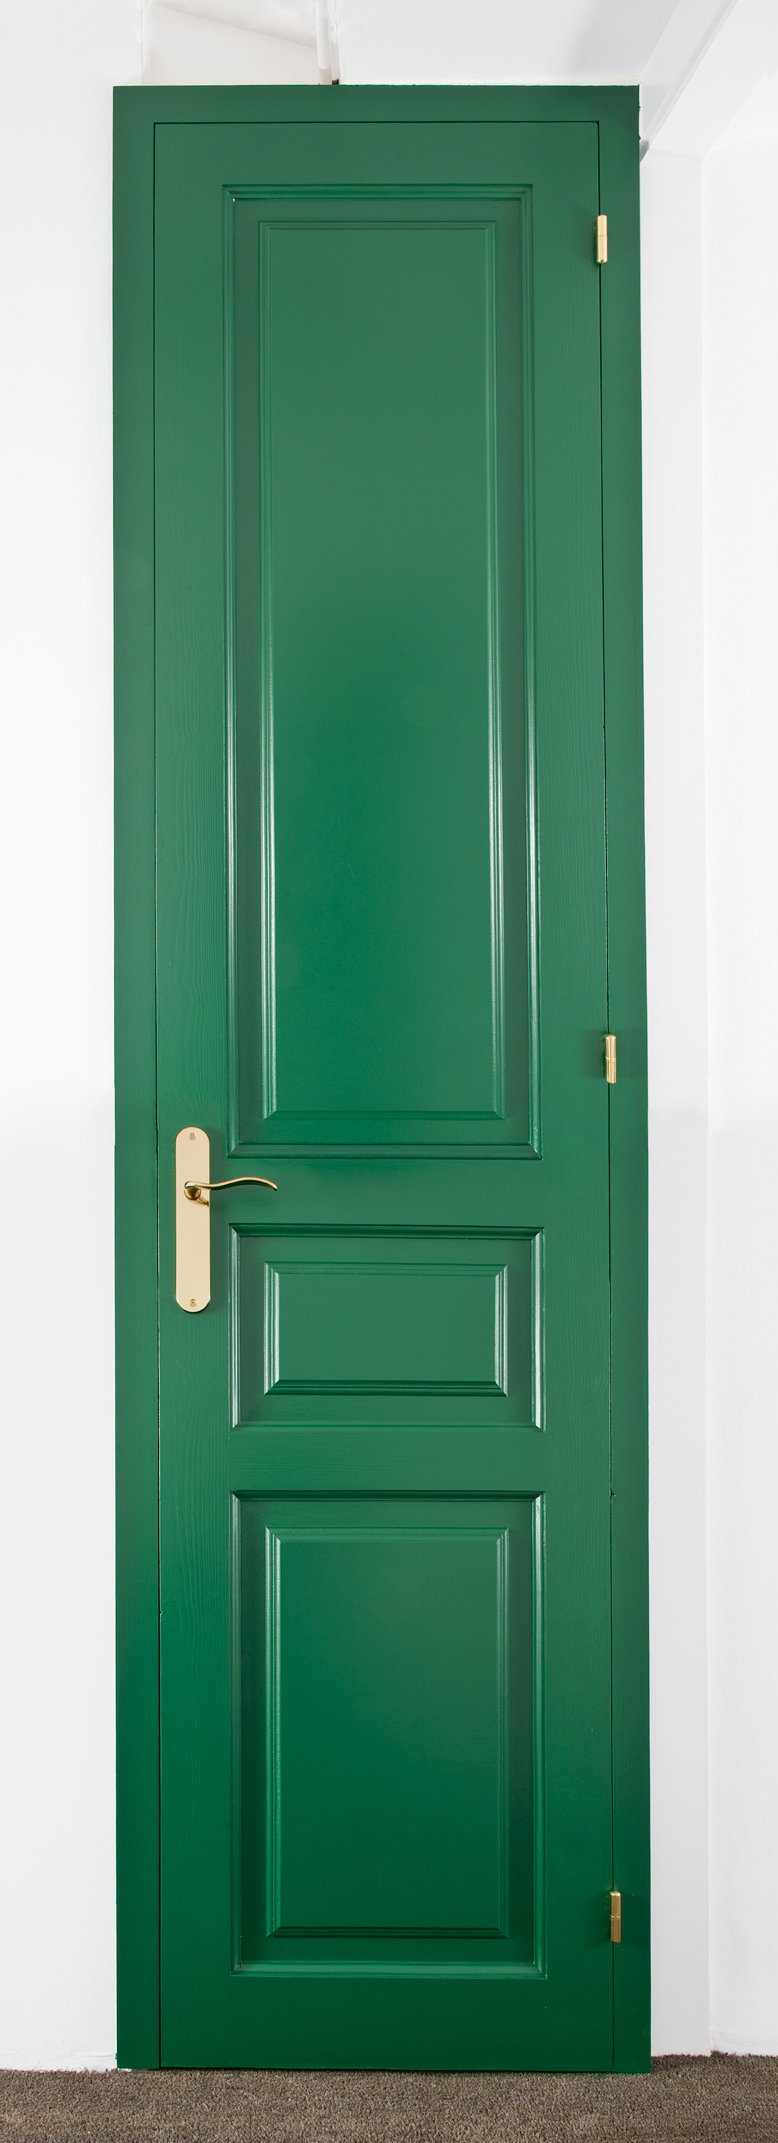 DORA GARCÍA. La Puerta Verde (The Green Door), 2013 | The Umbrella Corner. Chapters 4 and 5 | ProjecteSD